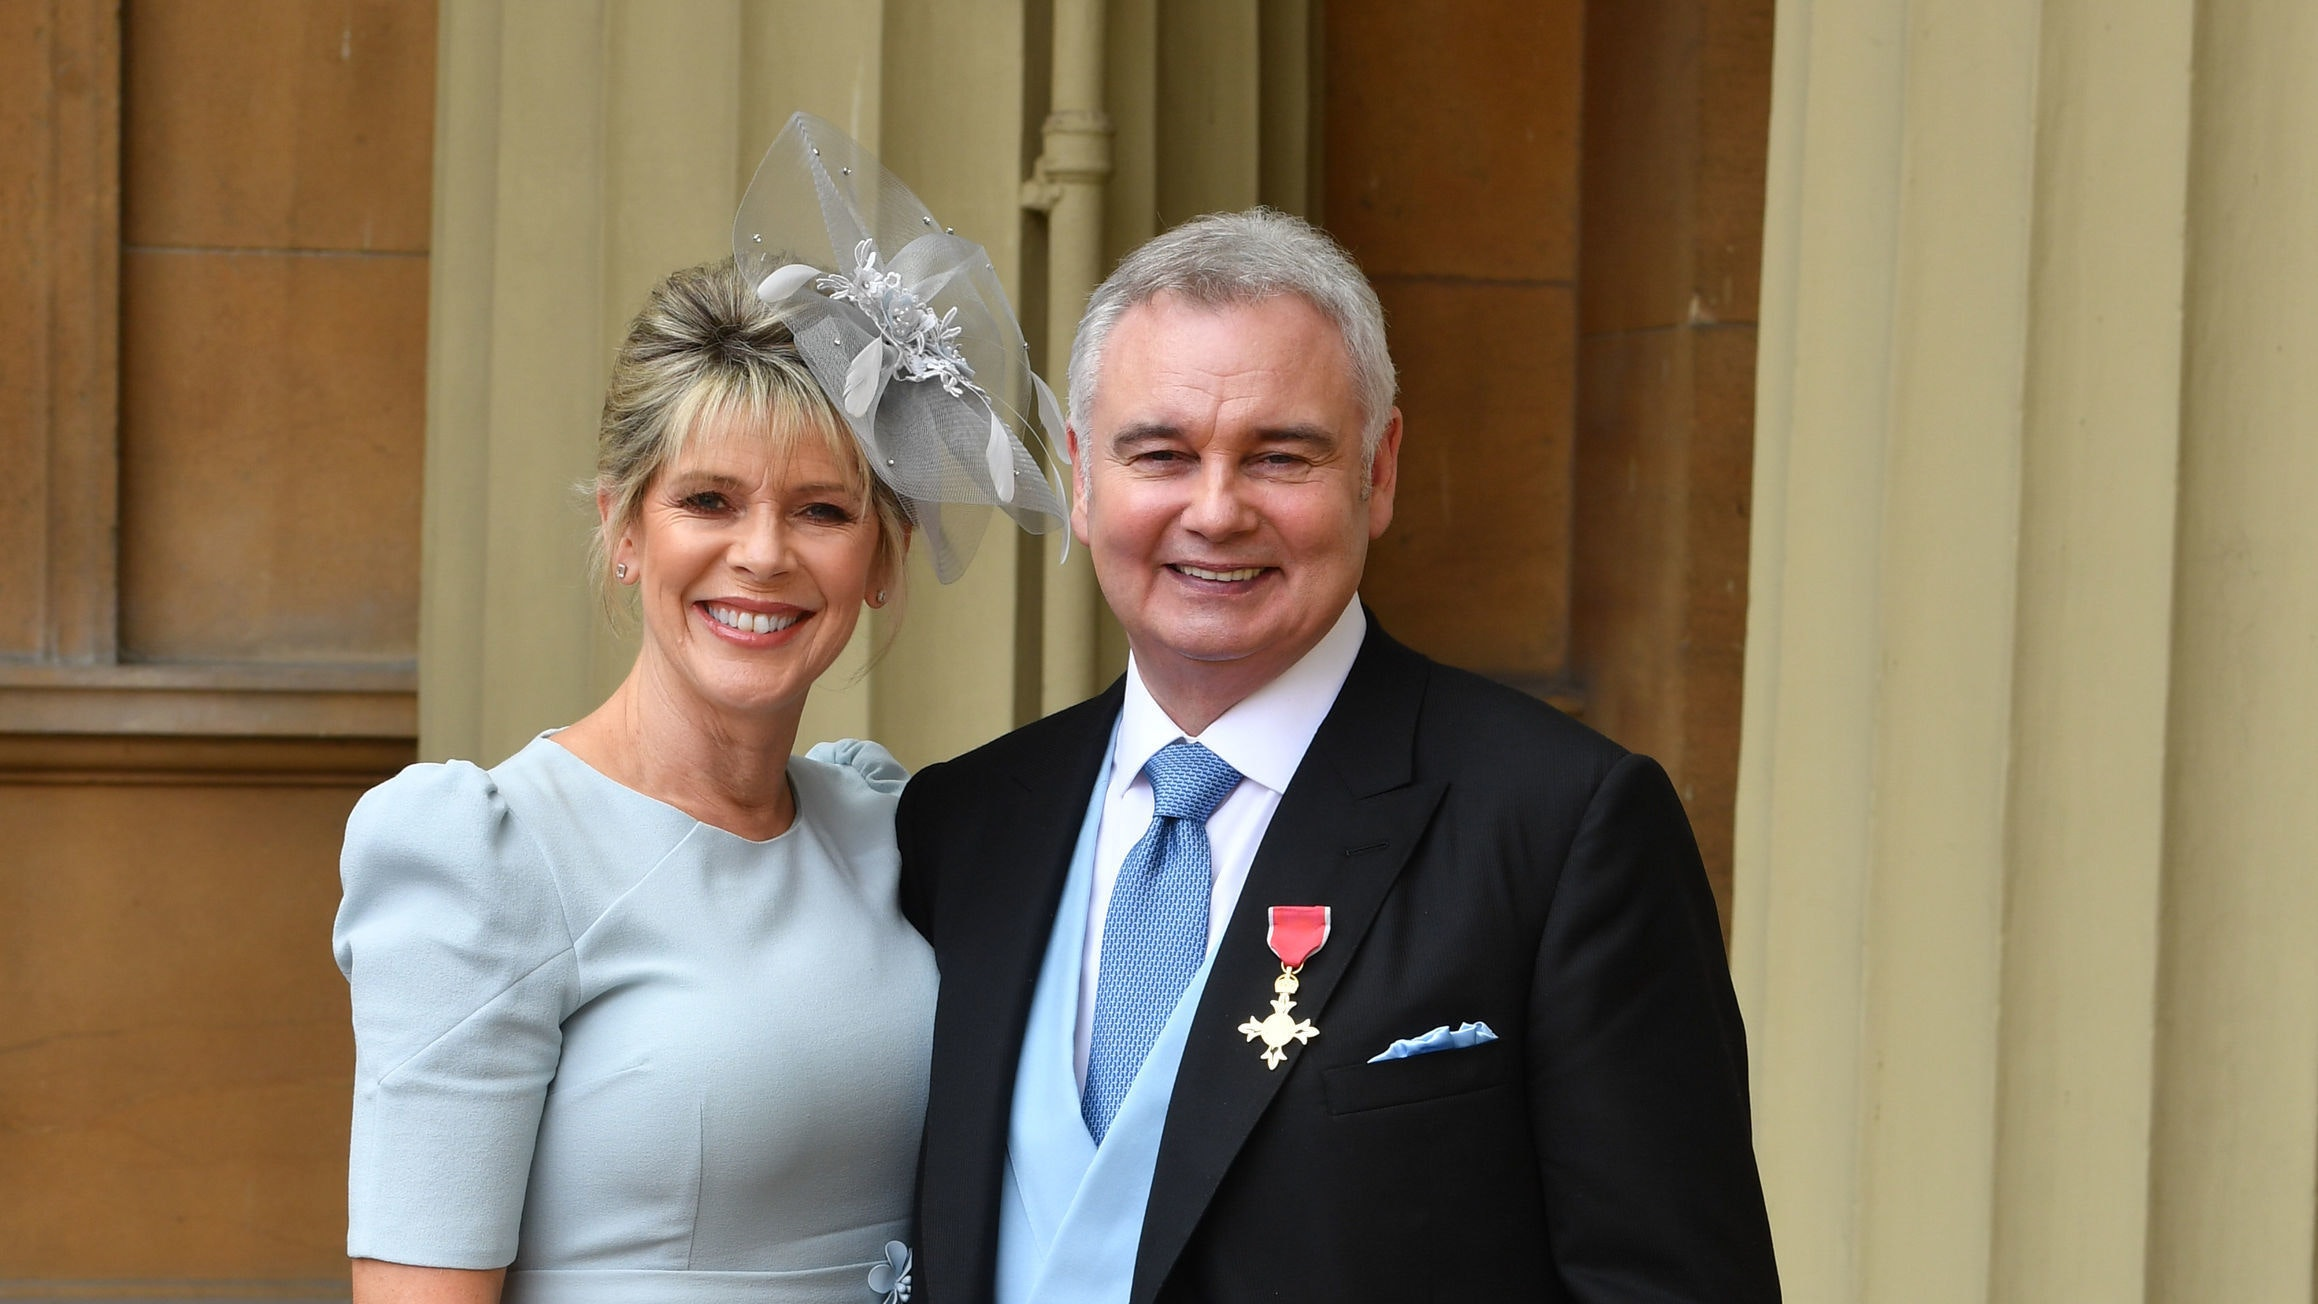 eamonn holmes and ruth langsford show breached tv rules bt. Black Bedroom Furniture Sets. Home Design Ideas